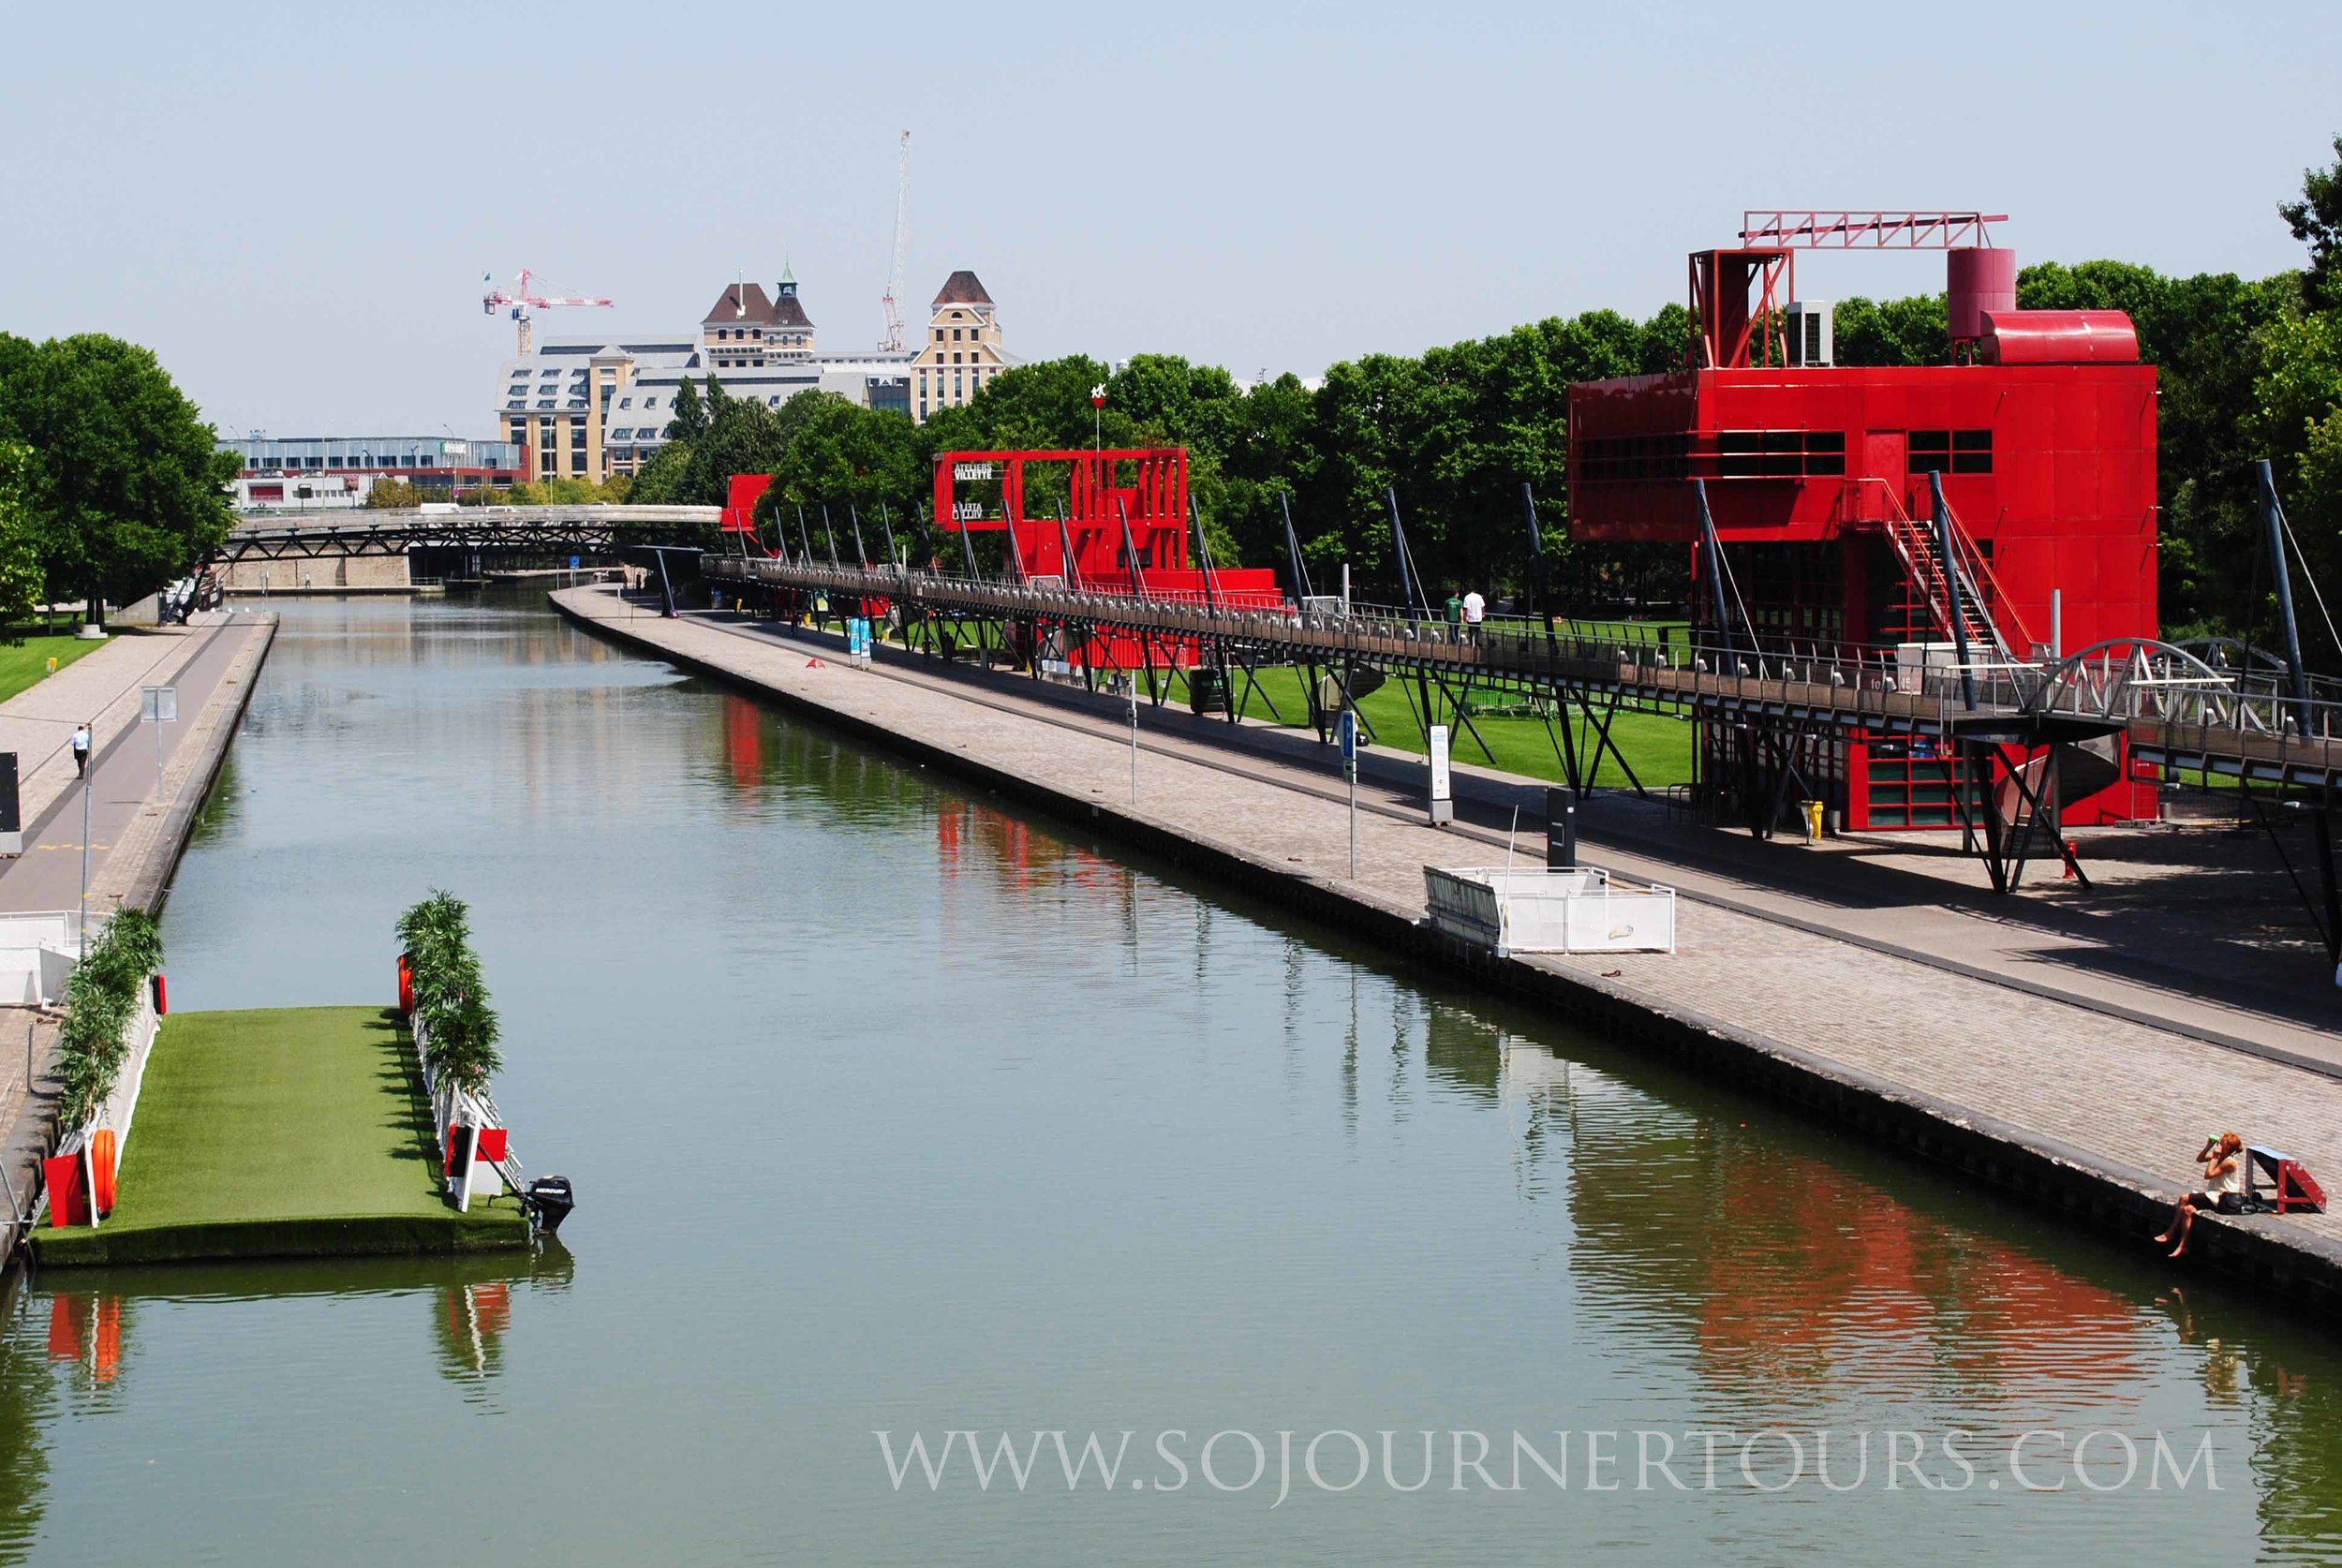 La Villette: Paris, France (Sojourner Tours)